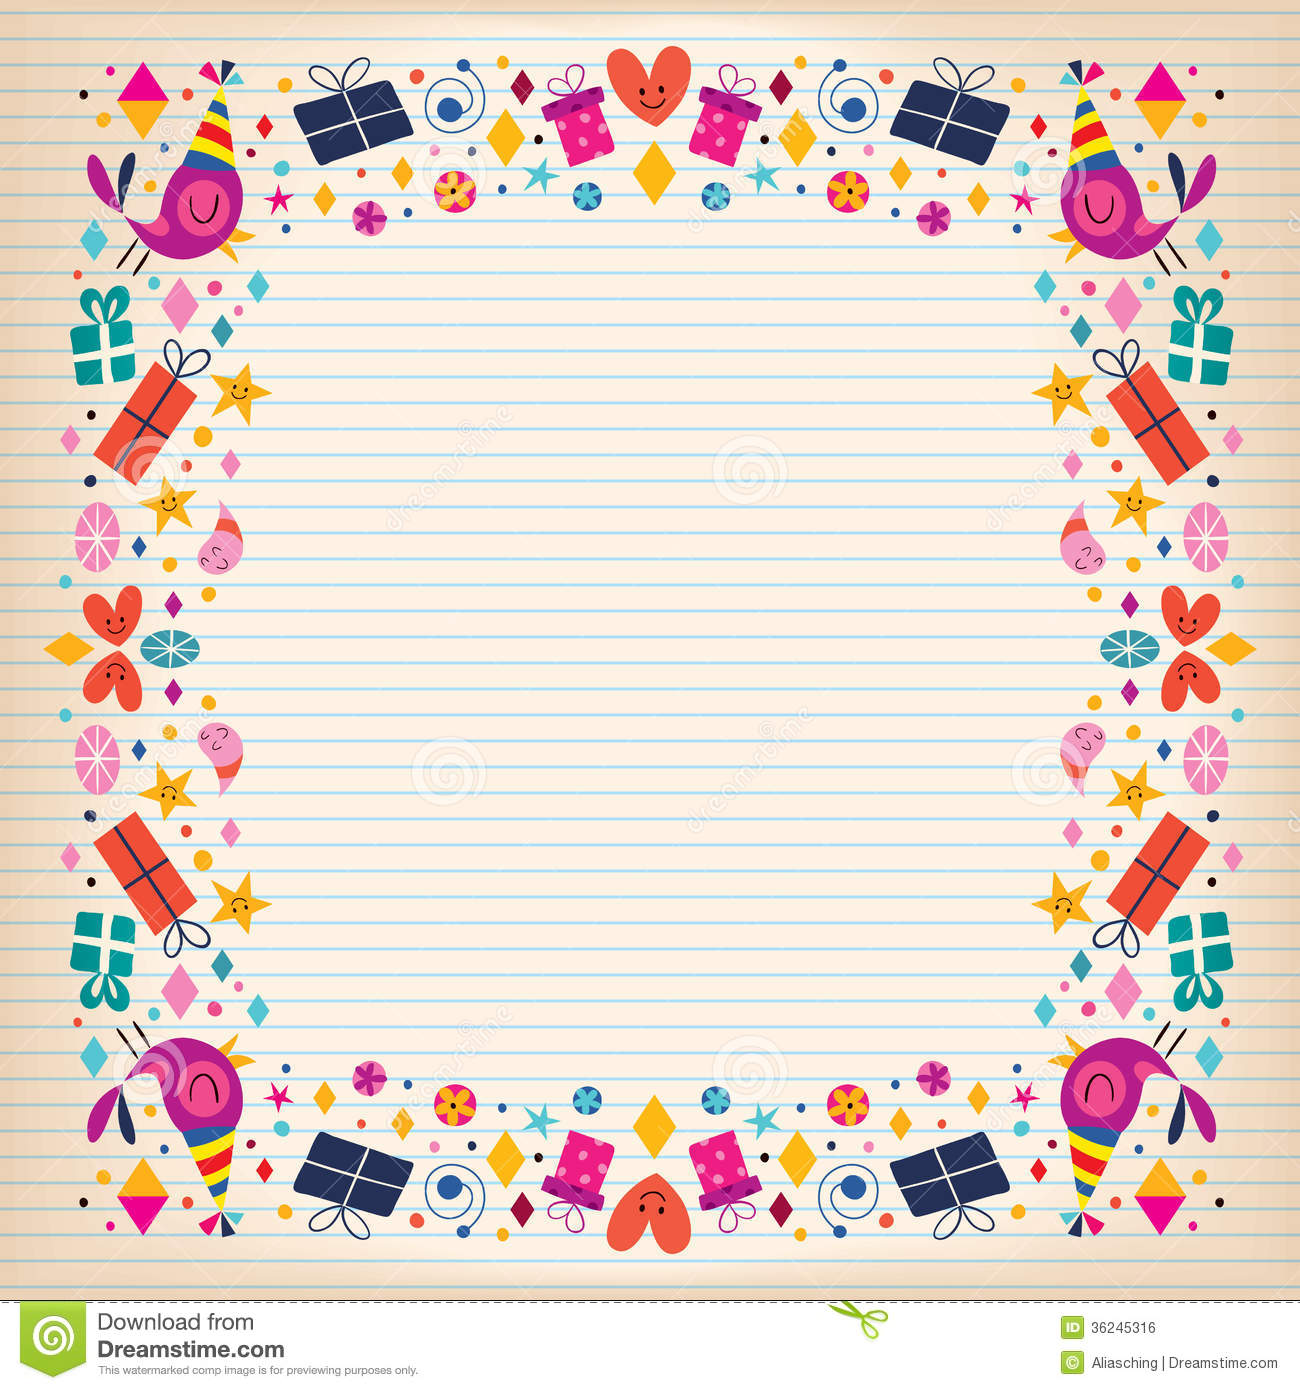 happy-birthday-border-lined-paper-card-space-text-36245316.jpg